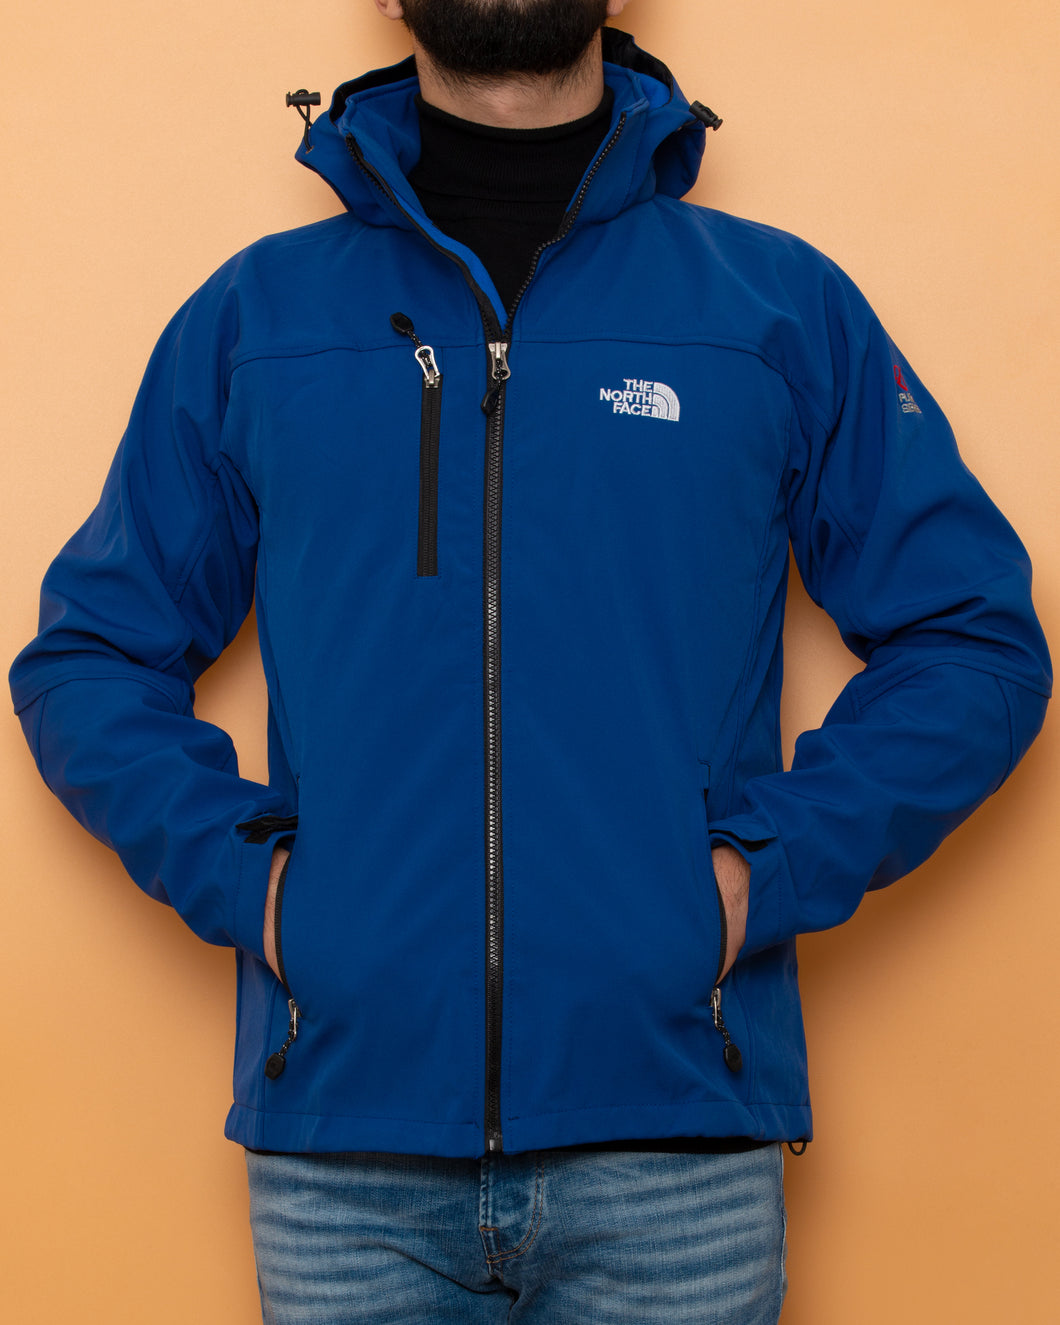 The North Face Jacket Royale Blue